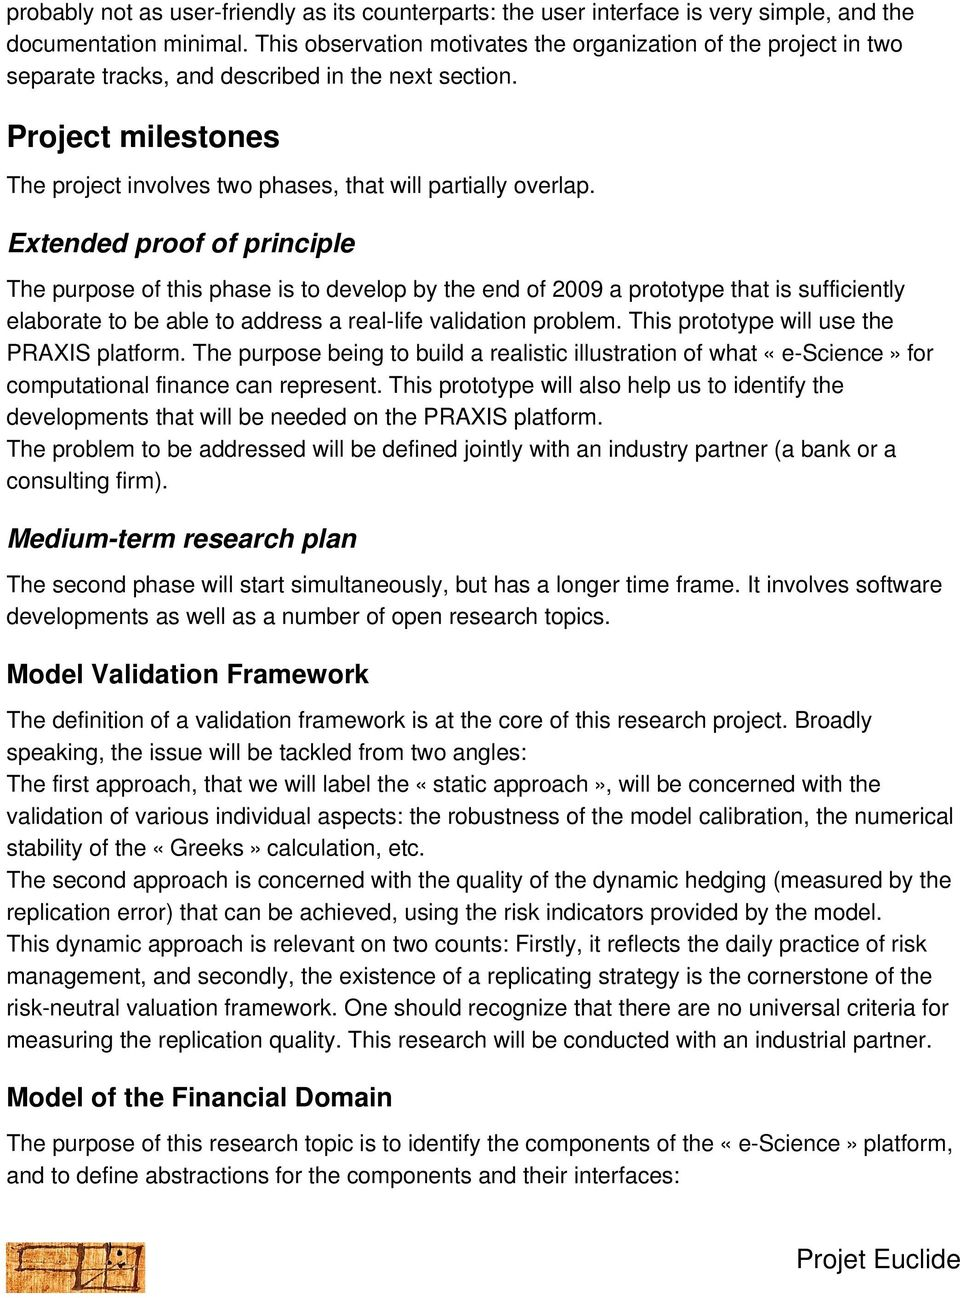 Extended proof of principle The purpose of this phase is to develop by the end of 2009 a prototype that is sufficiently elaborate to be able to address a real-life validation problem.